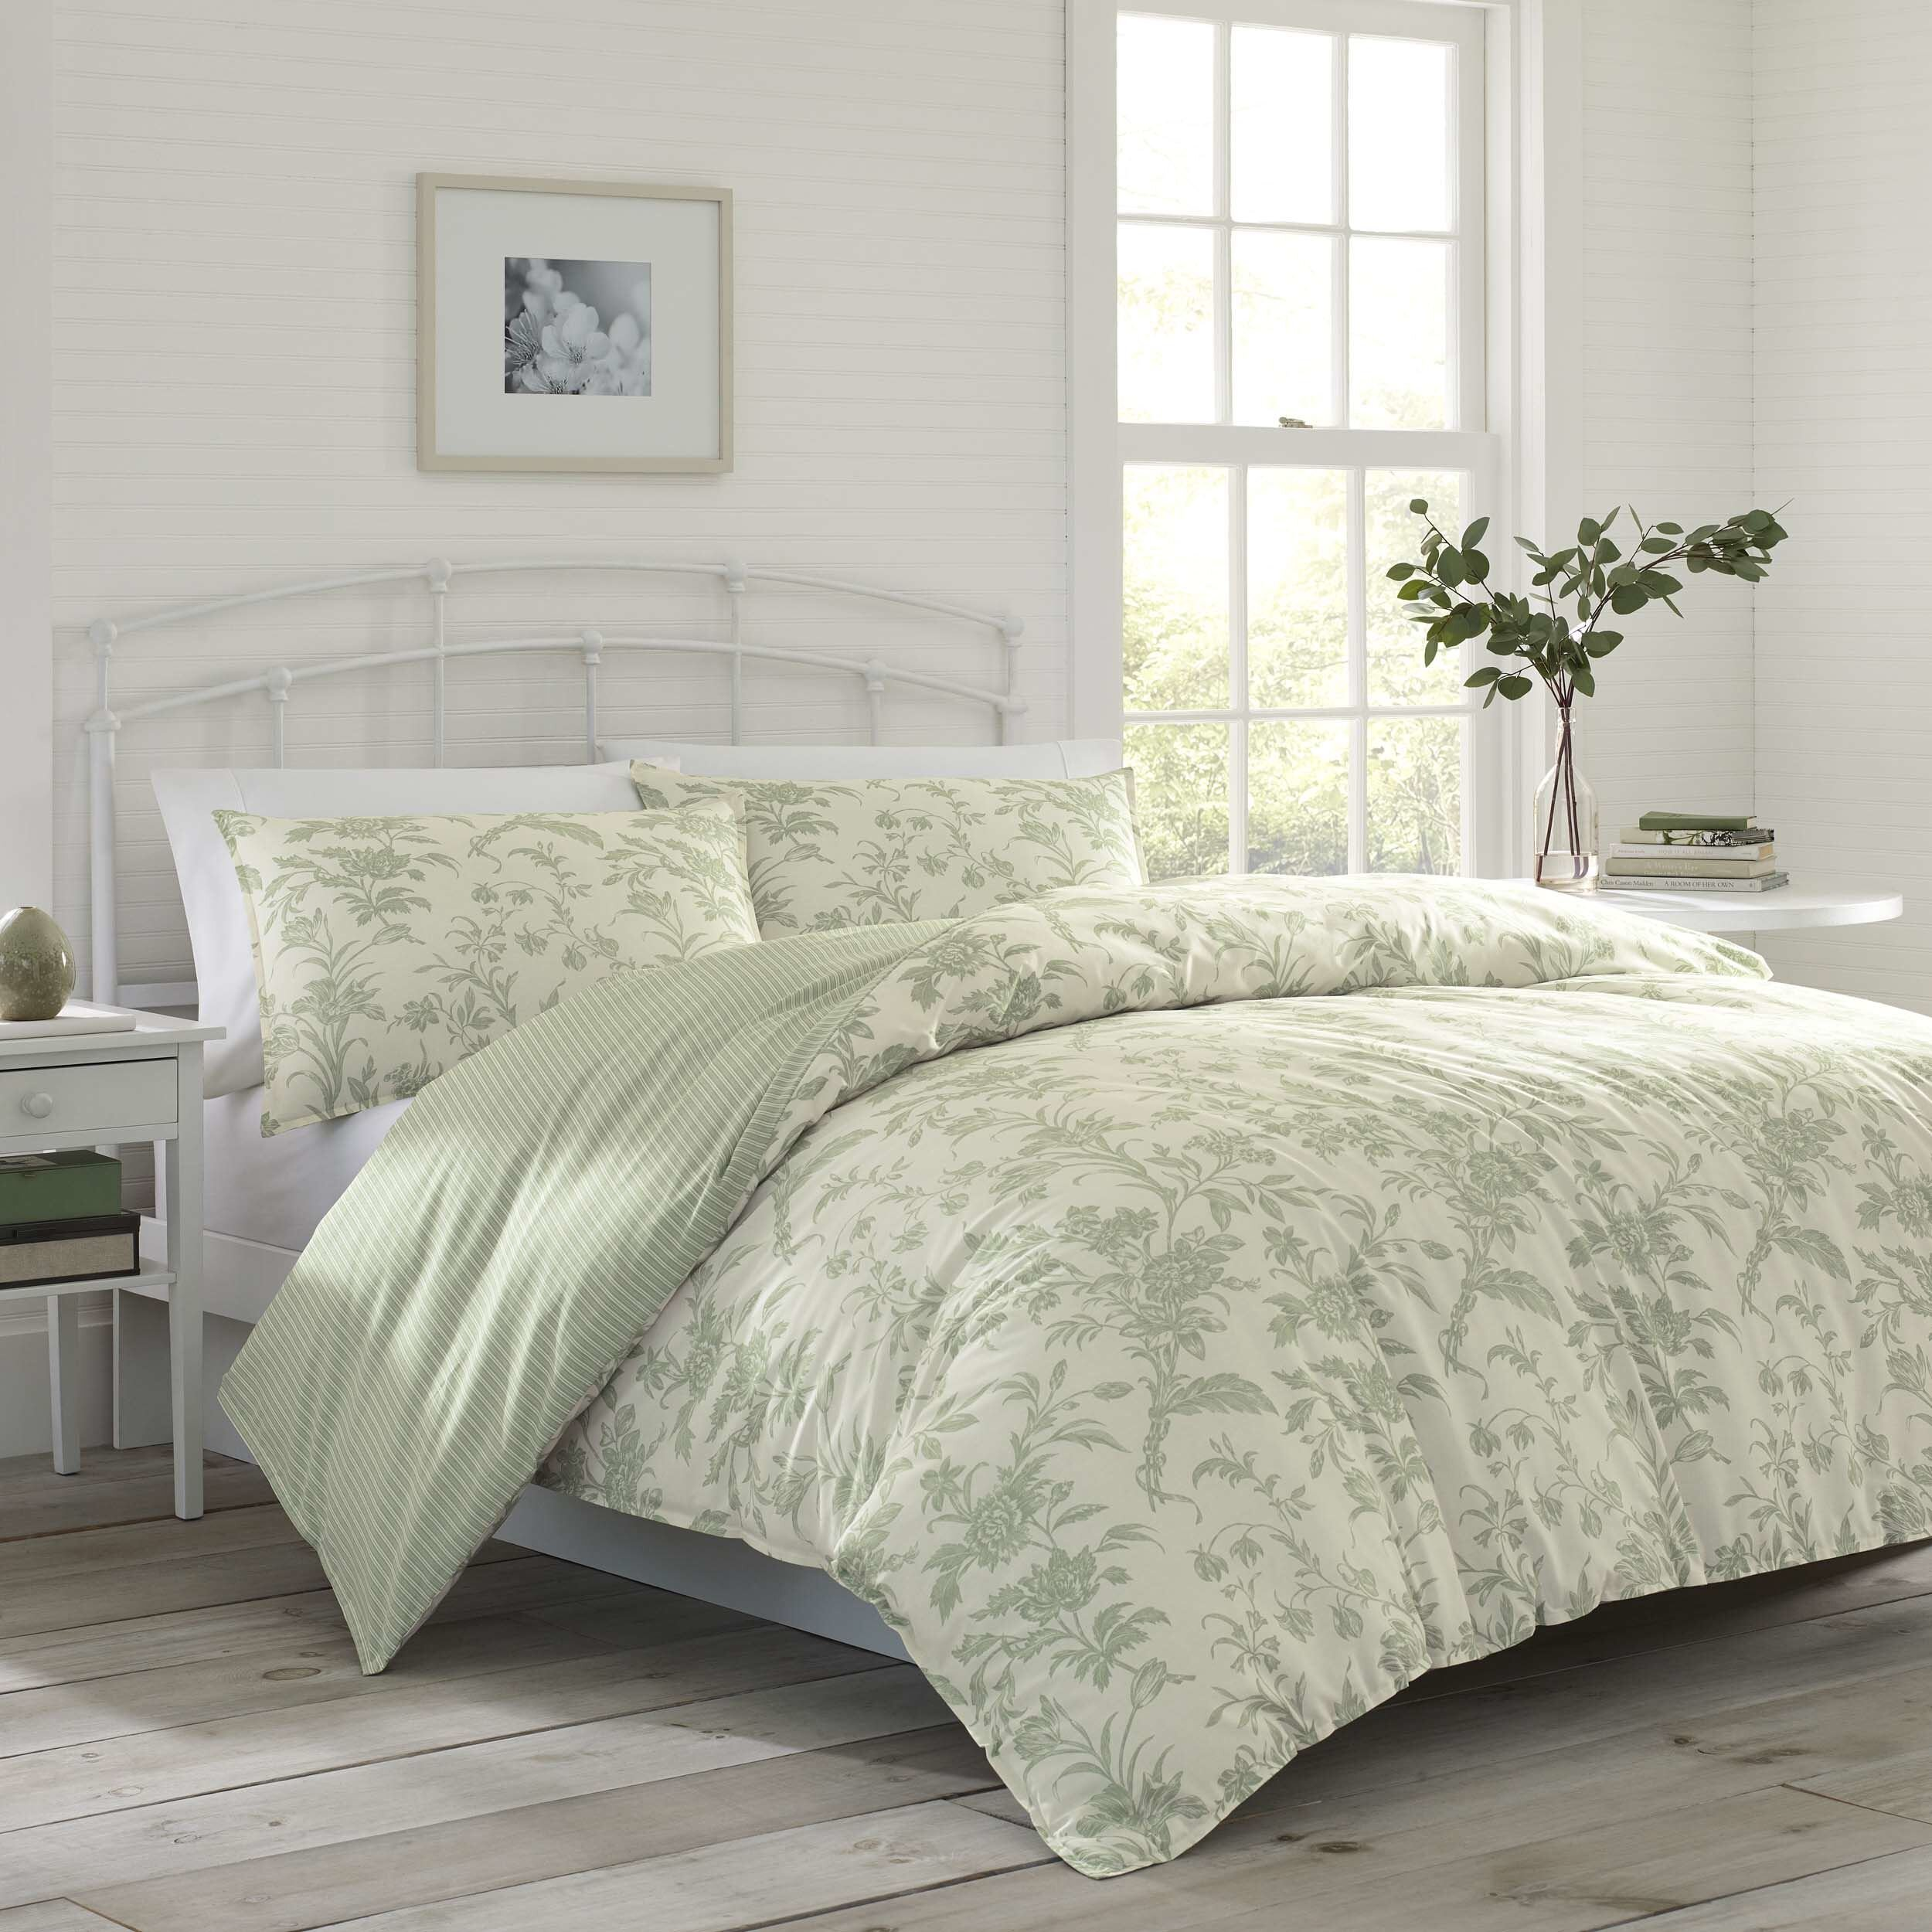 Laura Ashley Natalie Reversible Floral Cotton 5 Piece Comforter Set Reviews Wayfair